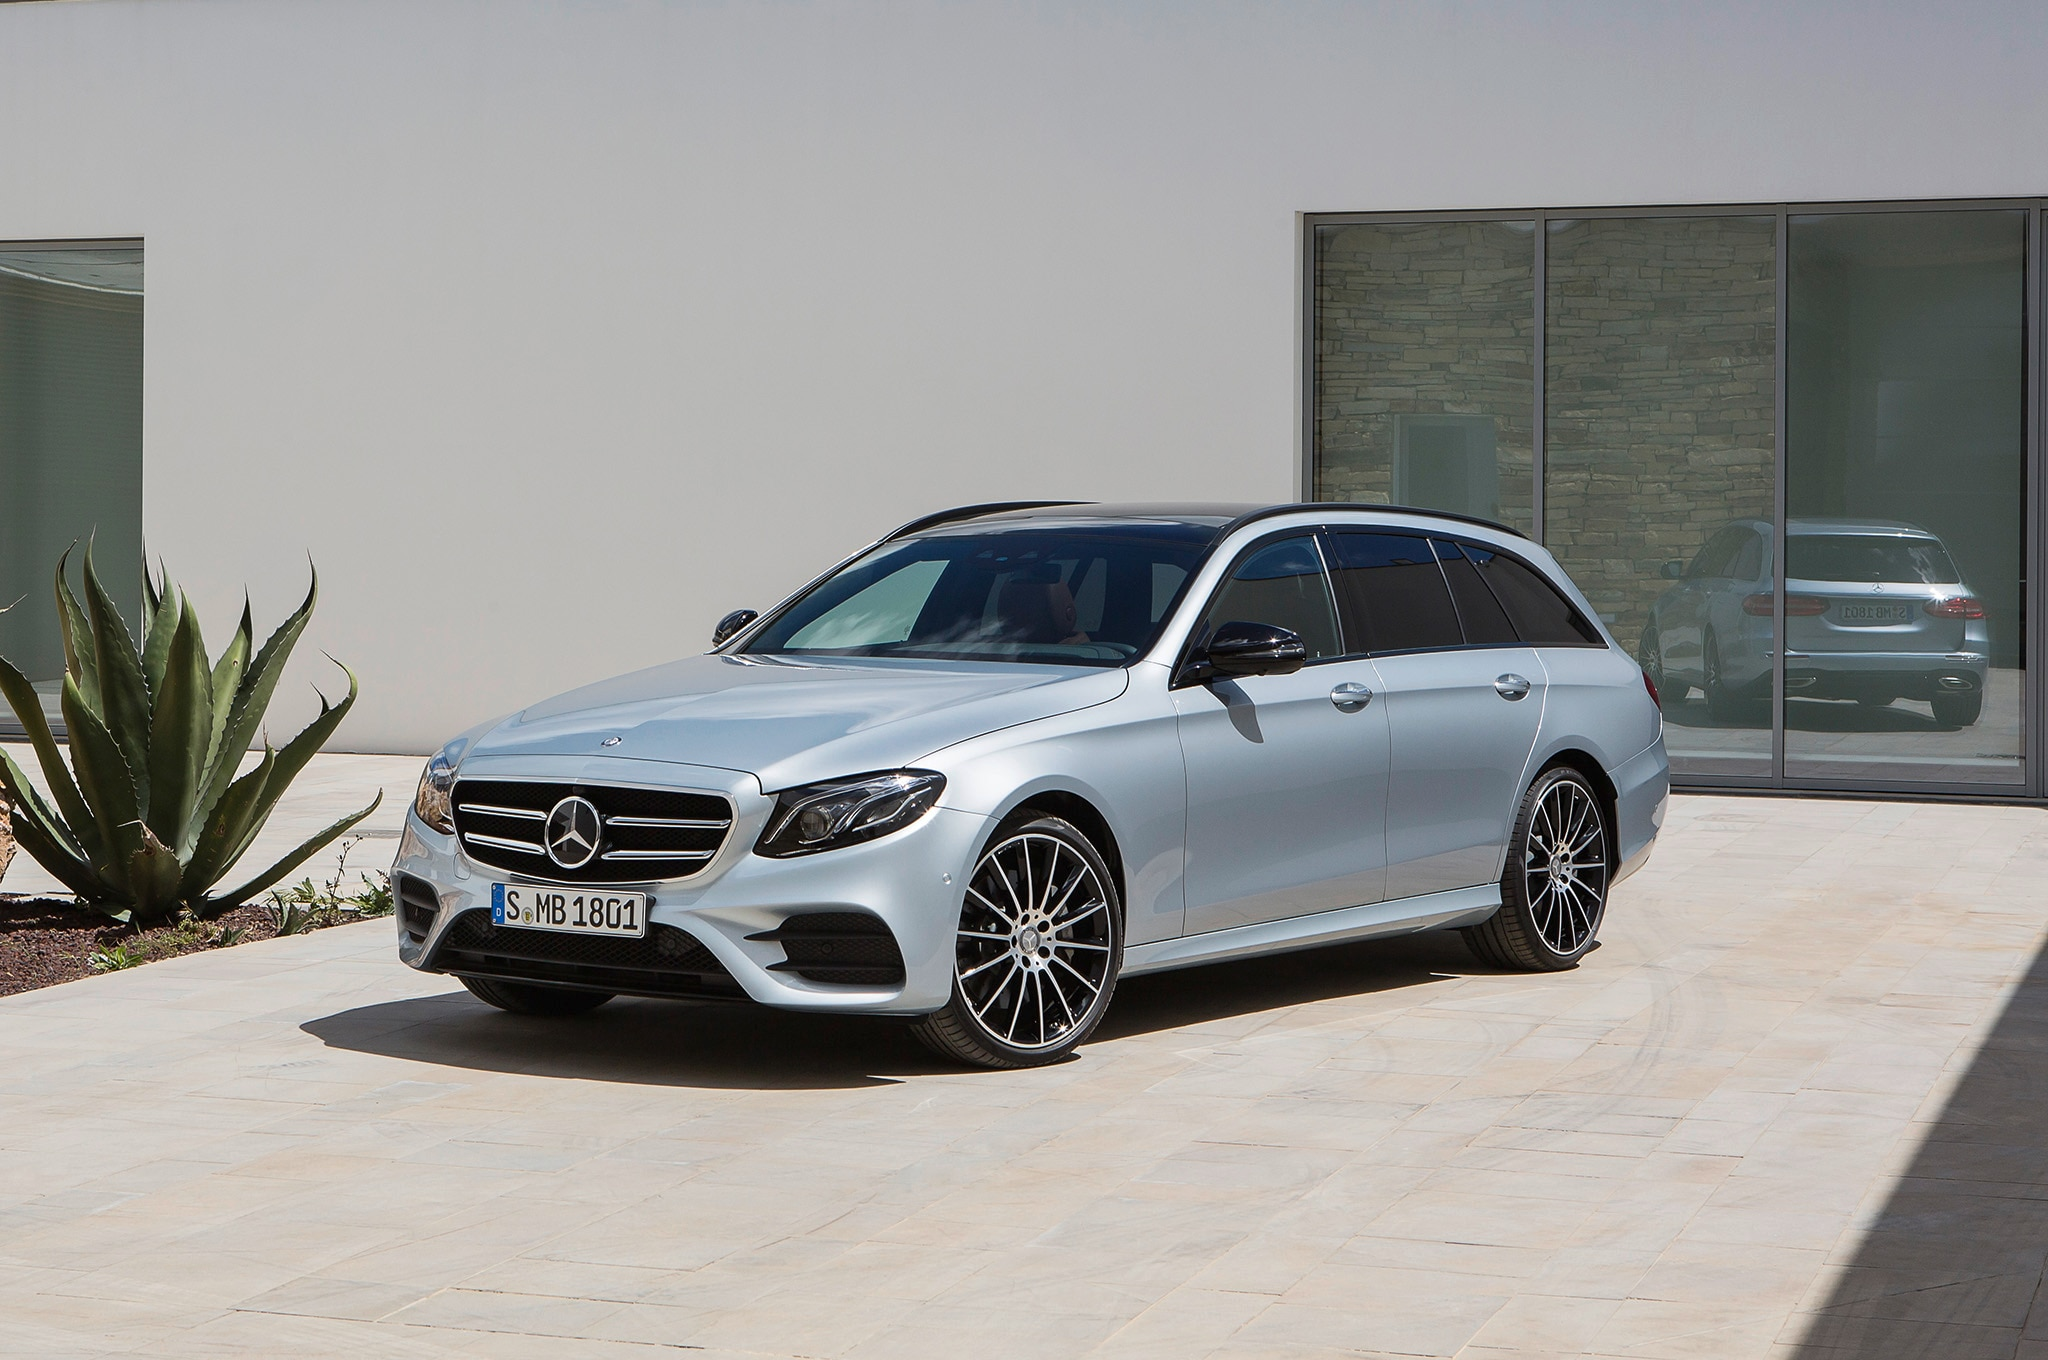 2017 mercedes benz e400 4matic wagon announced for Mercedes benz wagons